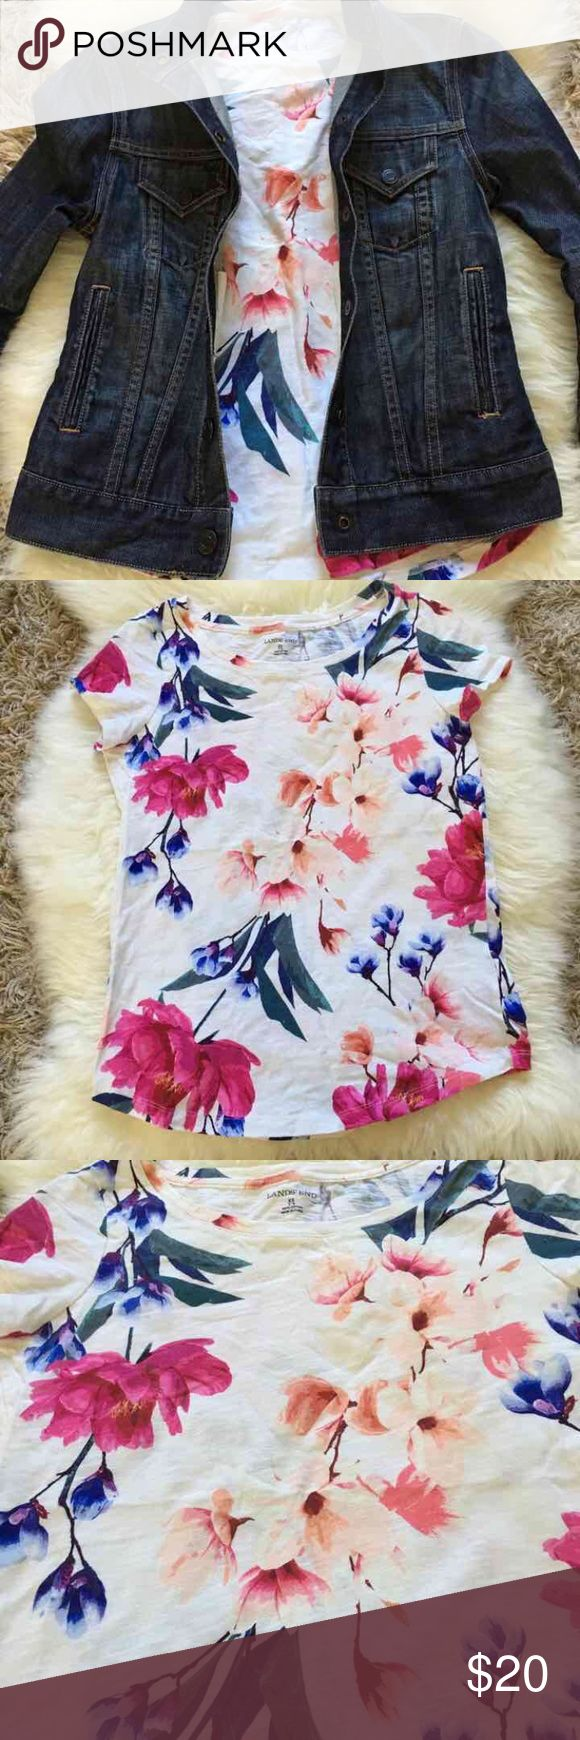 Lands End Floral Tee XS Women's XS cotton tee. Floral print. Line dried. Worn twice.  Gap denim jacket for sale in separate listing Lands' End Tops Tees - Short Sleeve